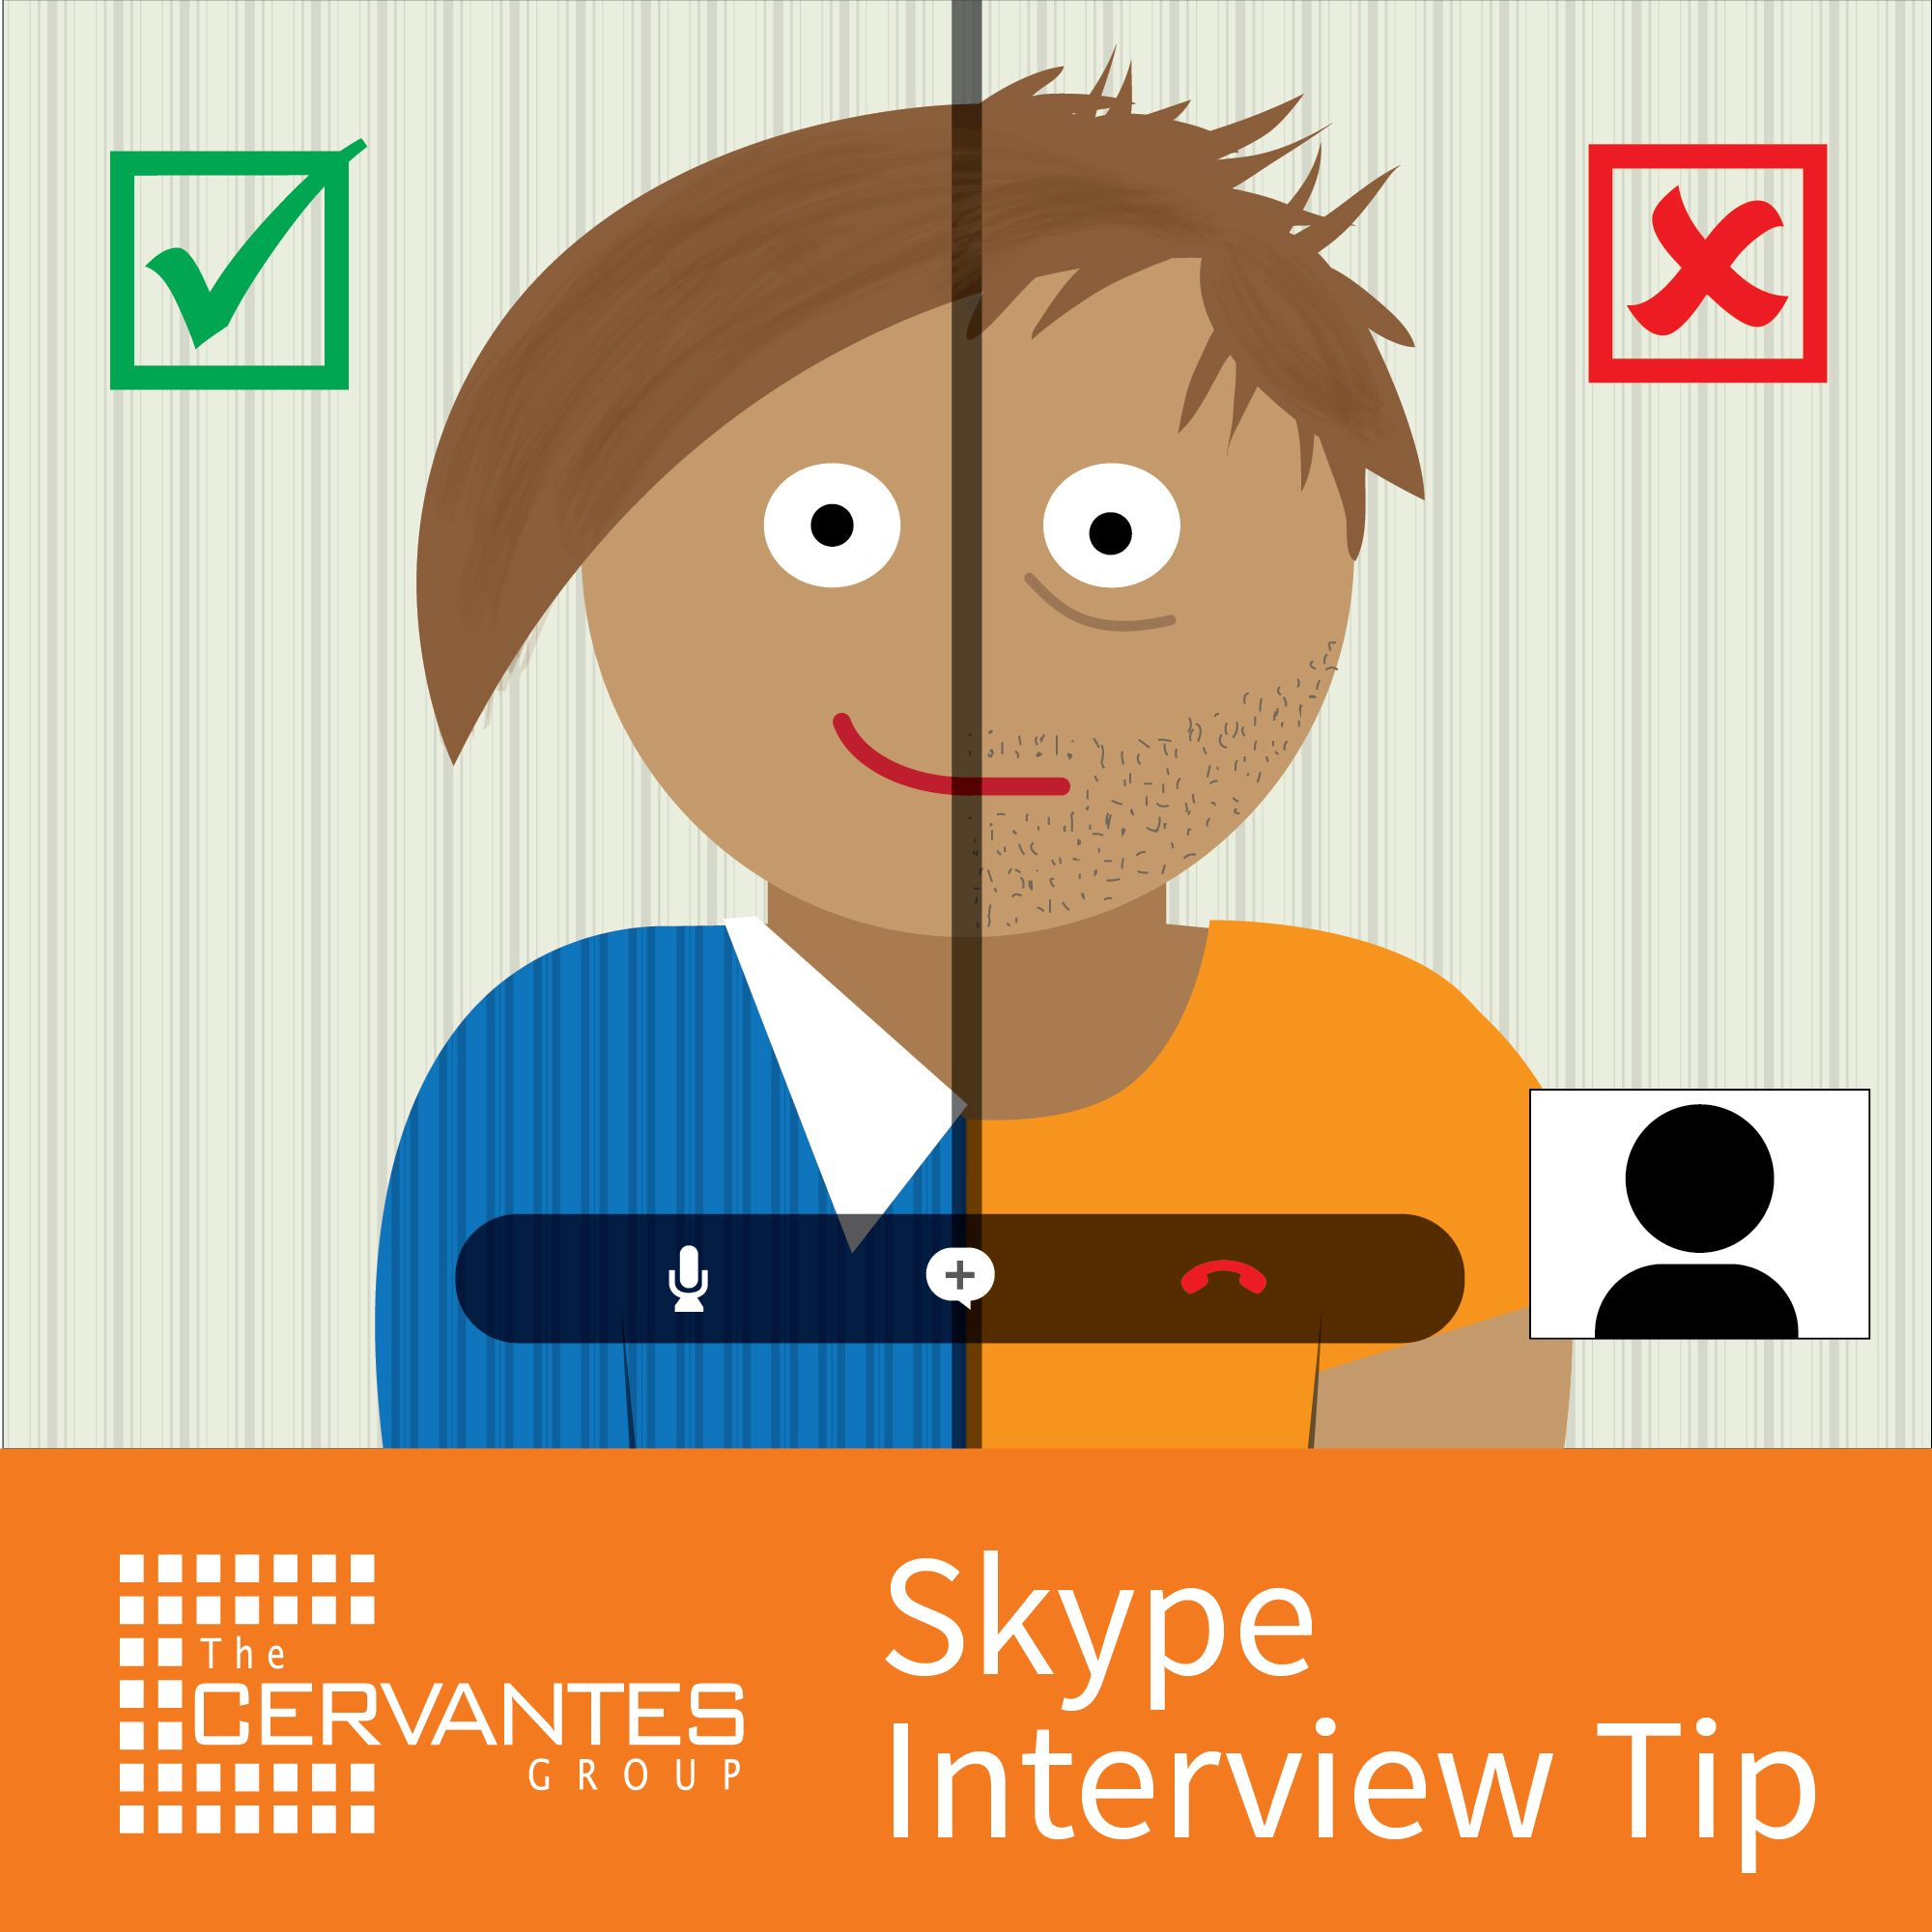 skype interview tip dress the part treat your skype interview like an in person interview and dress professionally from head to toe not excuses